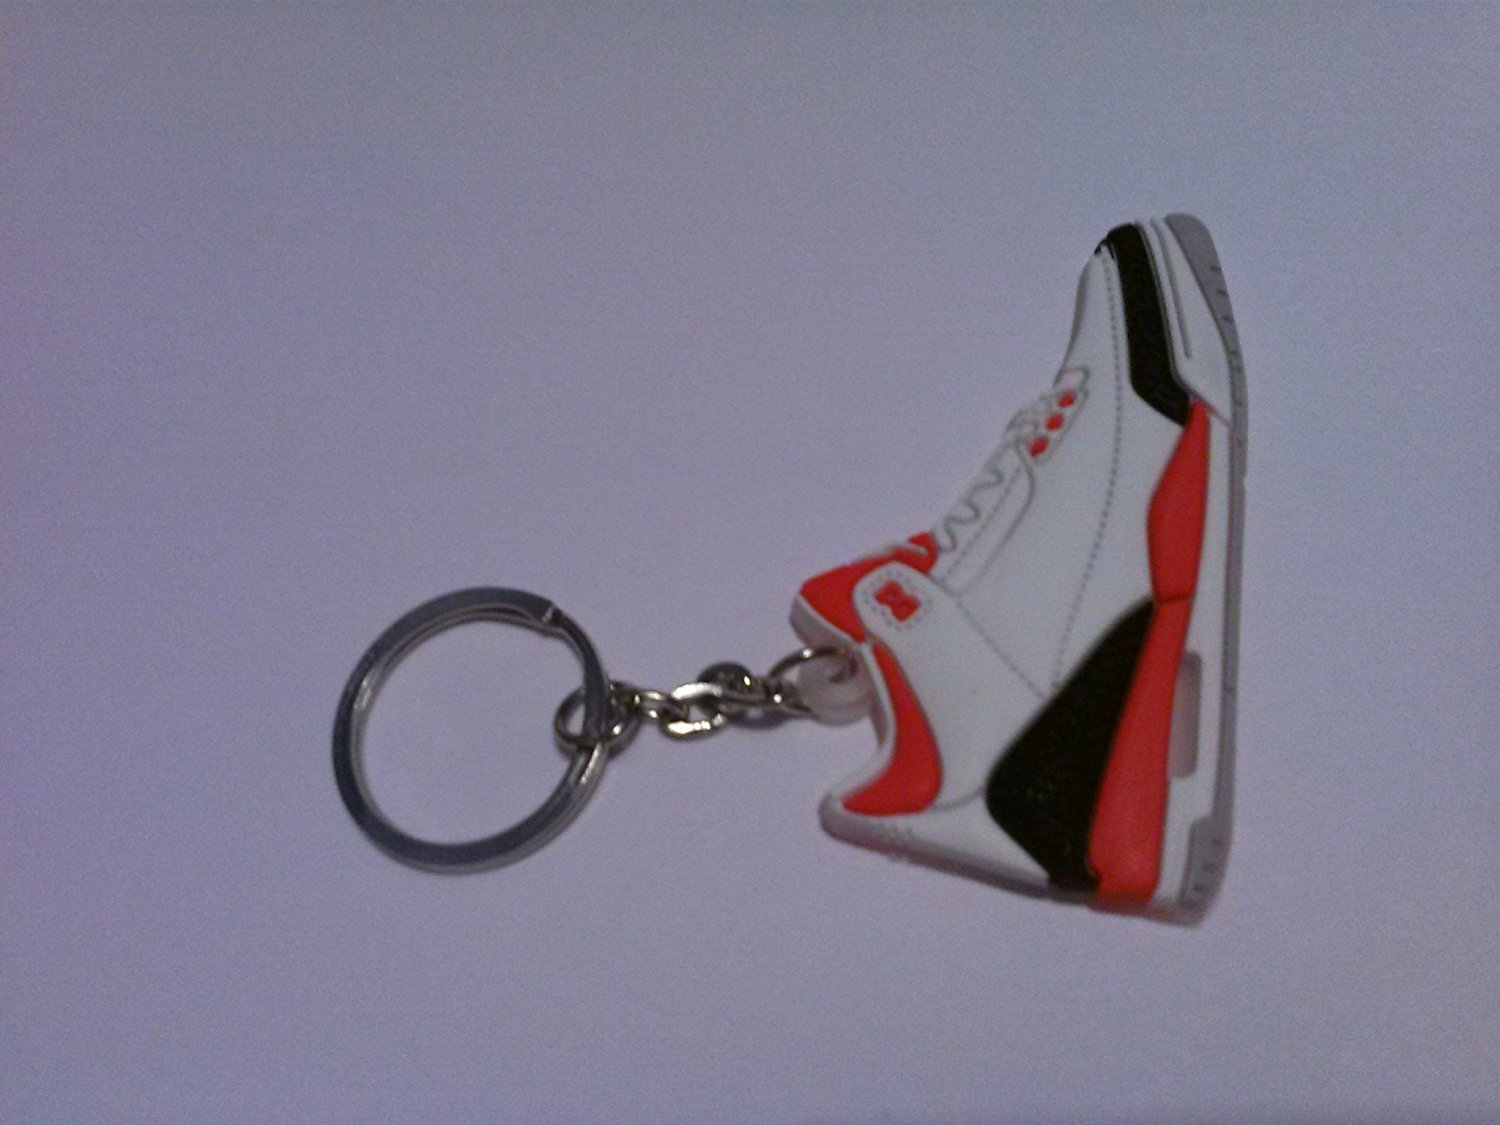 Air Jordan III/3 Cement 88 Fire Red/White/Black Chicago Bulls Sneakers Shoes Keychain Keyring AJ 23 Retro